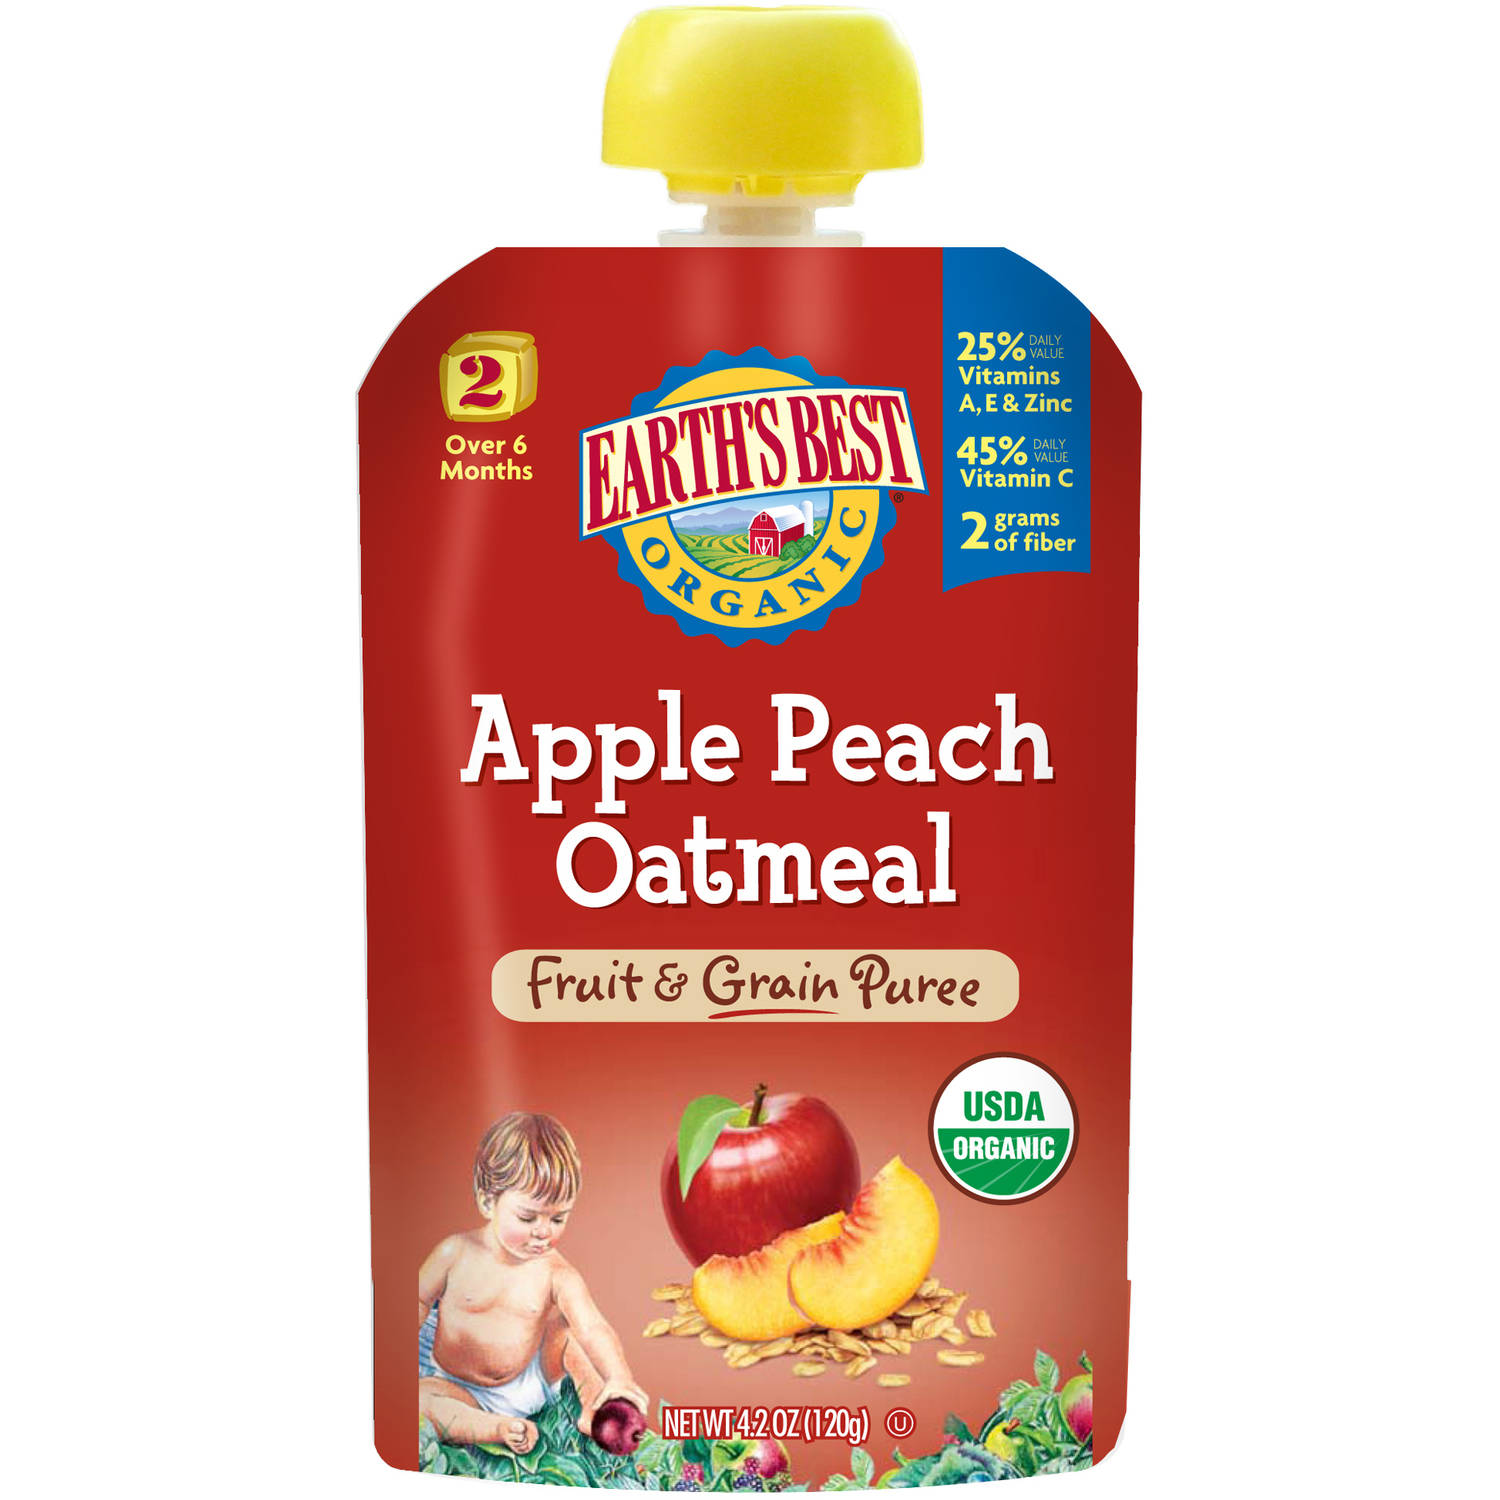 Earth's Best Organic Apple Peach Oatmeal Fruit & Grain Puree, 4.2 oz, (Pack of 6) by Earth%27s Best